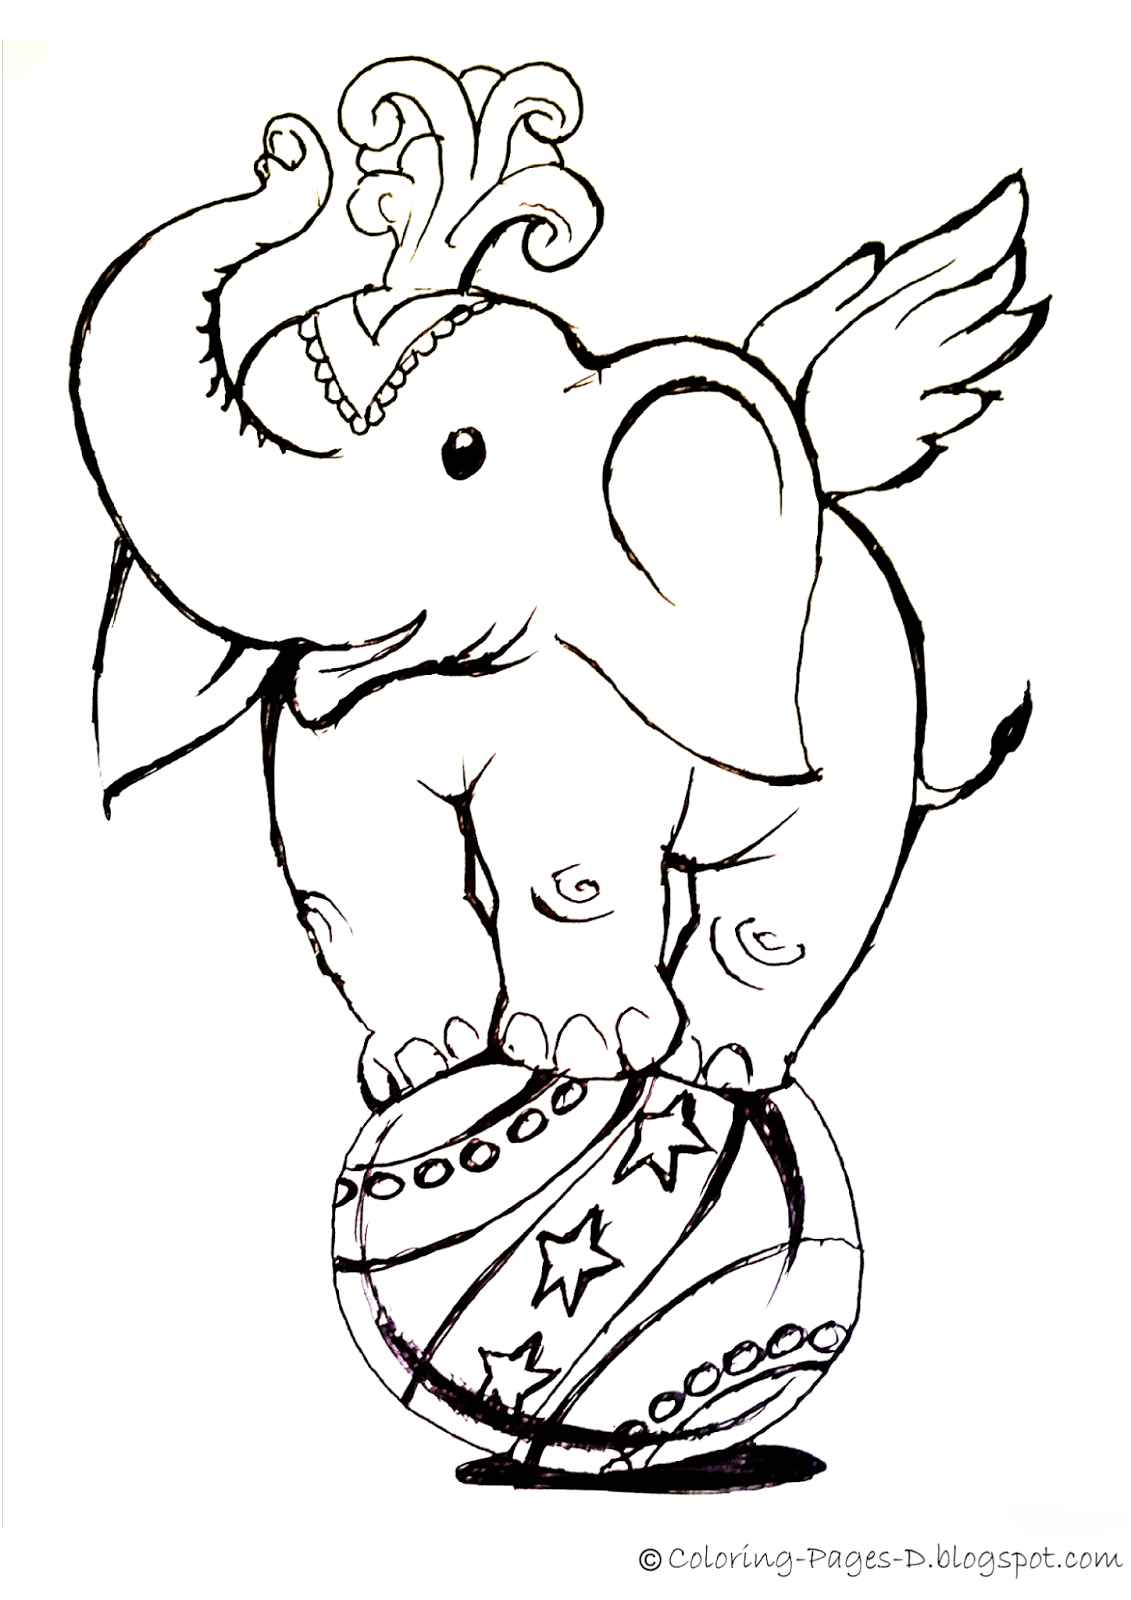 Circus Elephant On Ball Childrens Coloring Pages